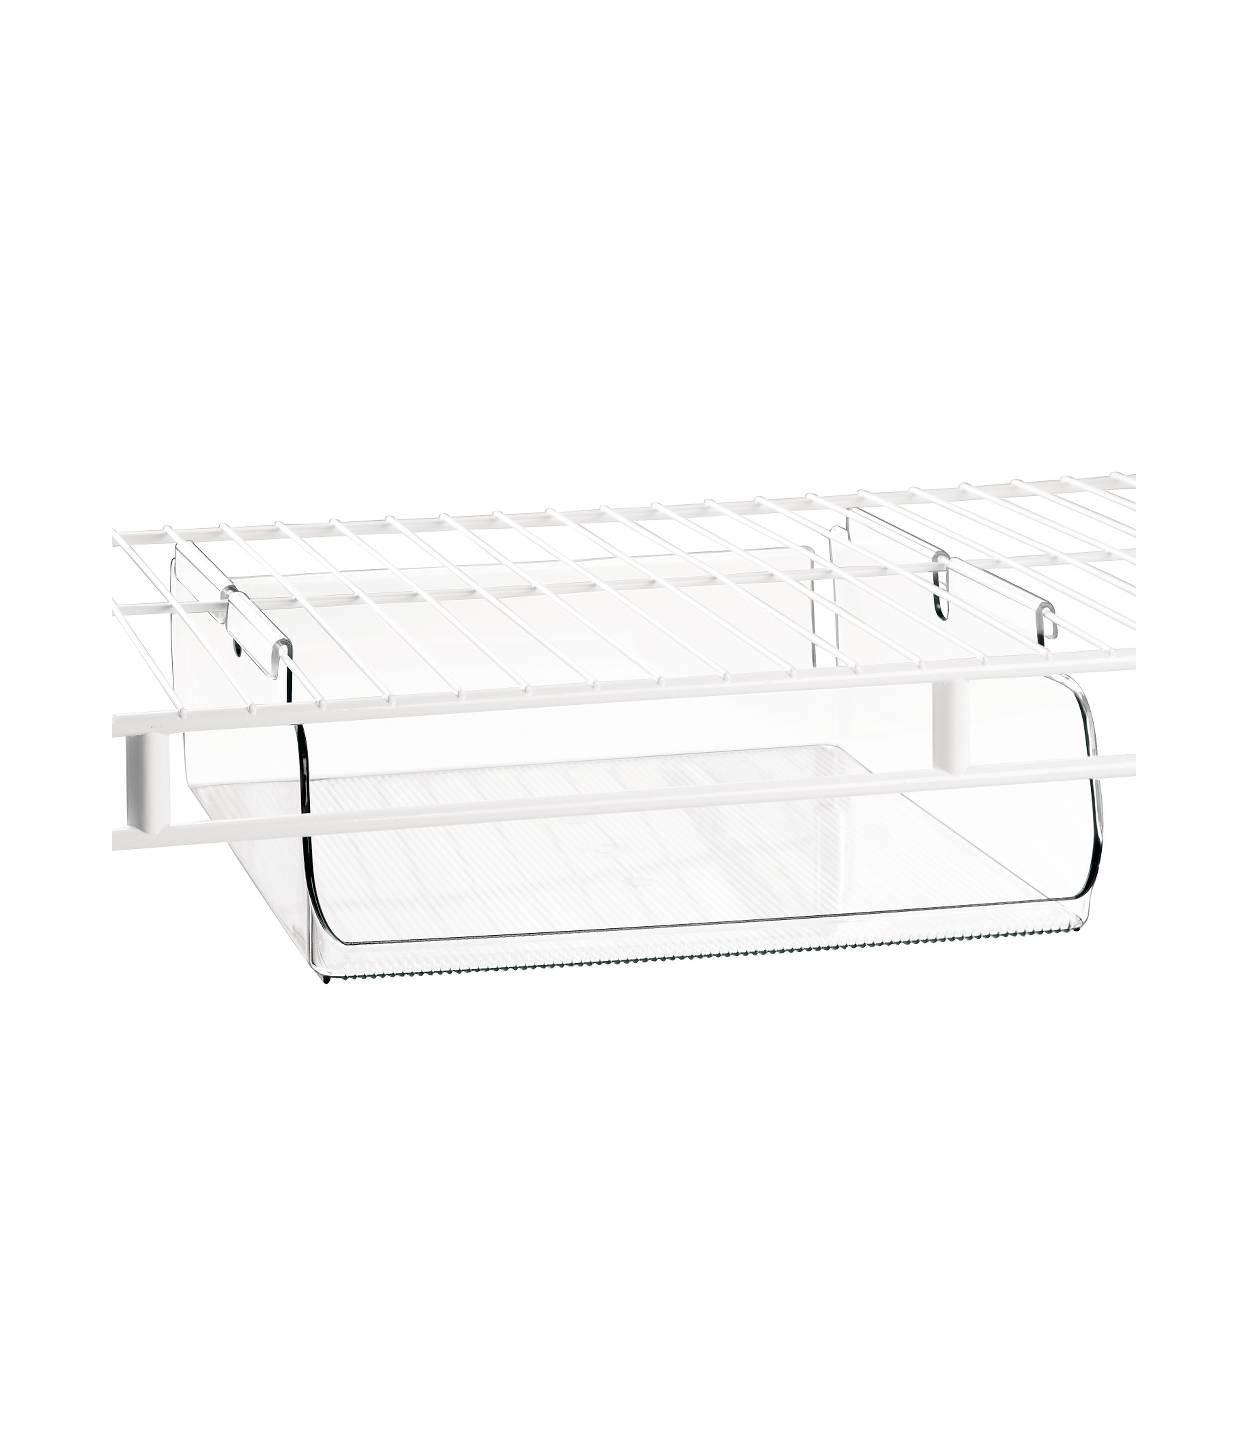 InterDesign Tru-Grasp Under-the-Shelf Hanging Bin